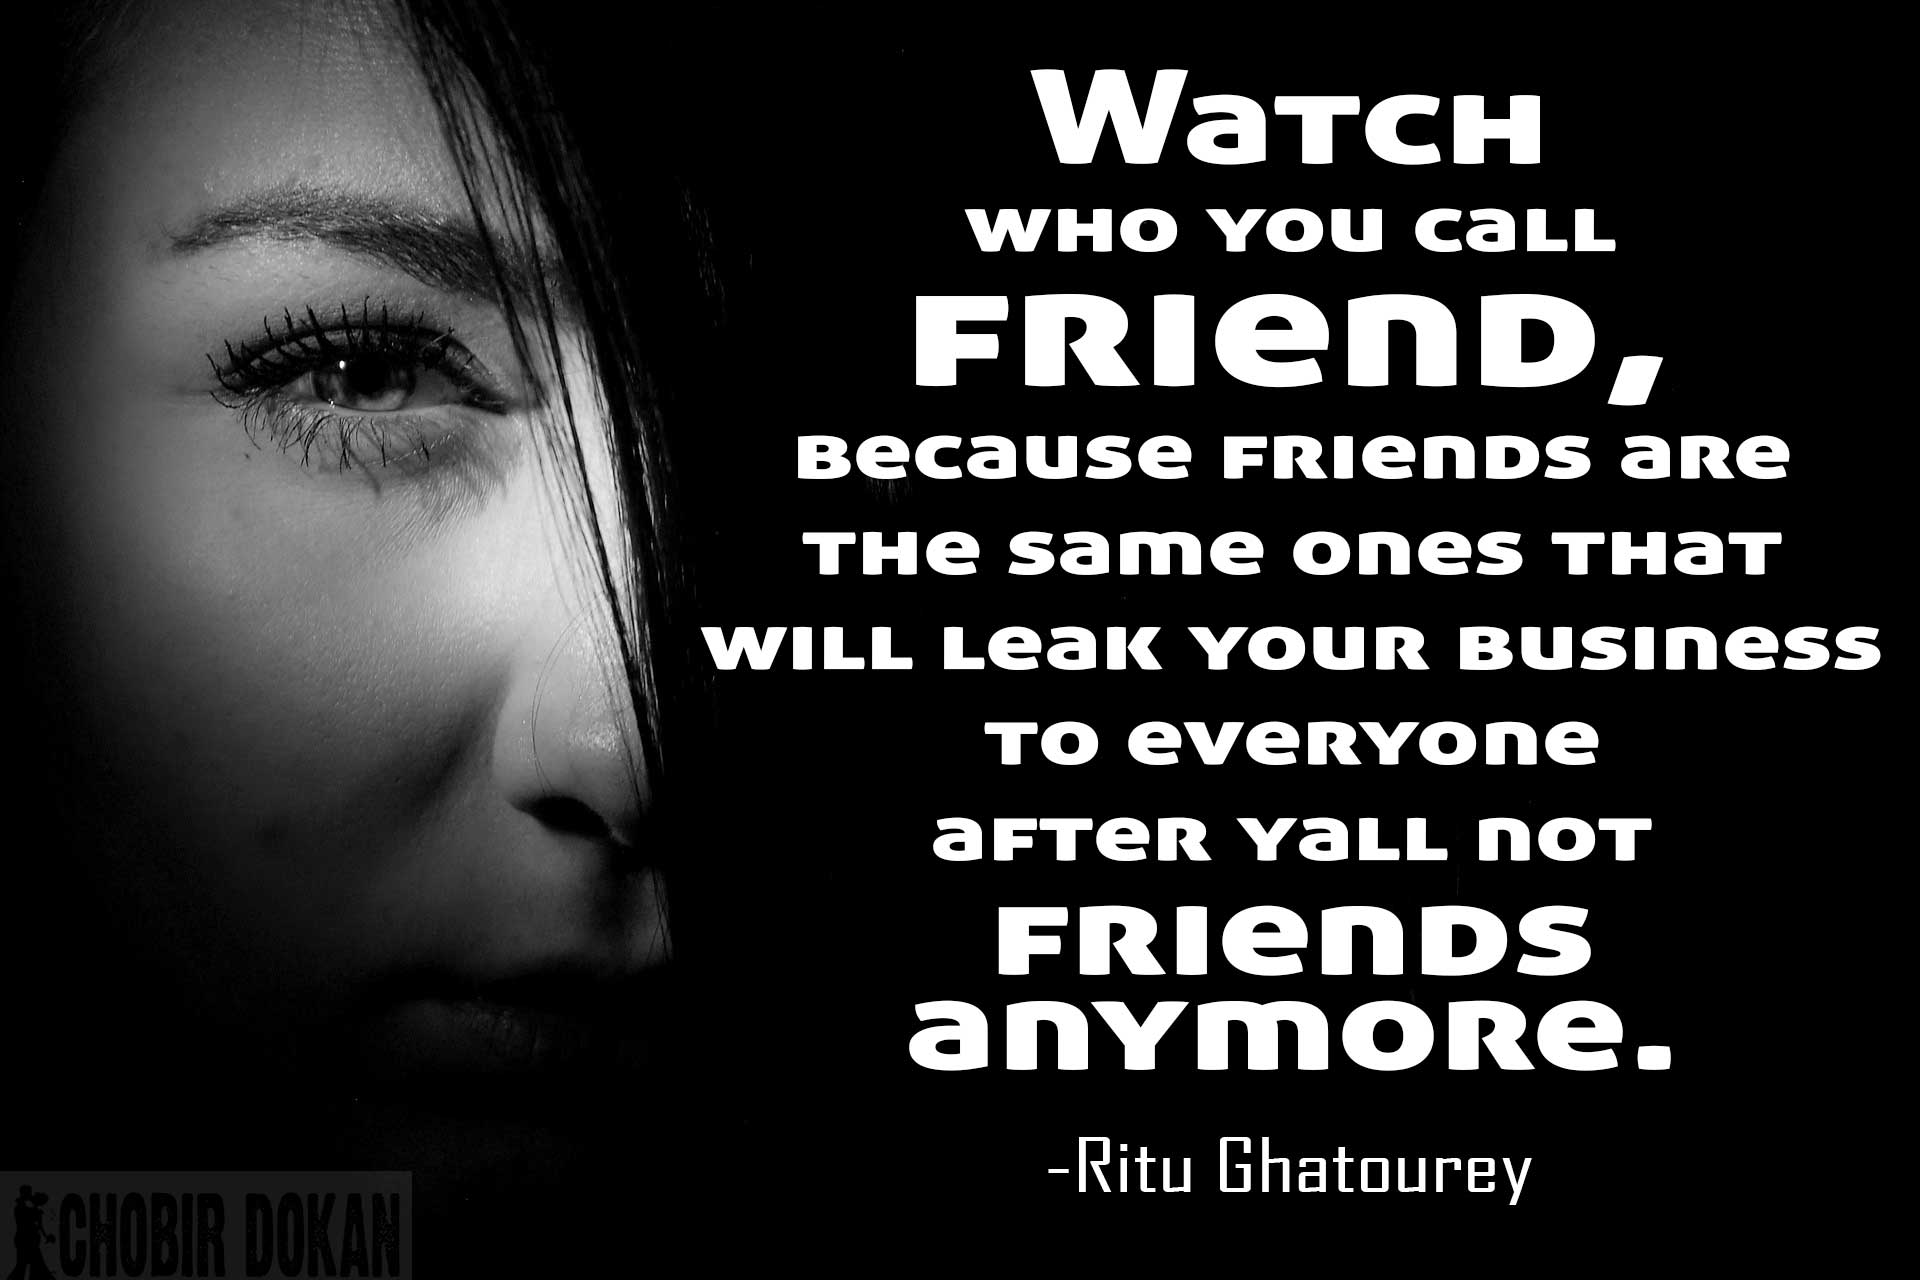 Quotes About Fake Friendship Interesting 28 Fake Friends Quotes Images For Facebook Quotes About Bad Friends